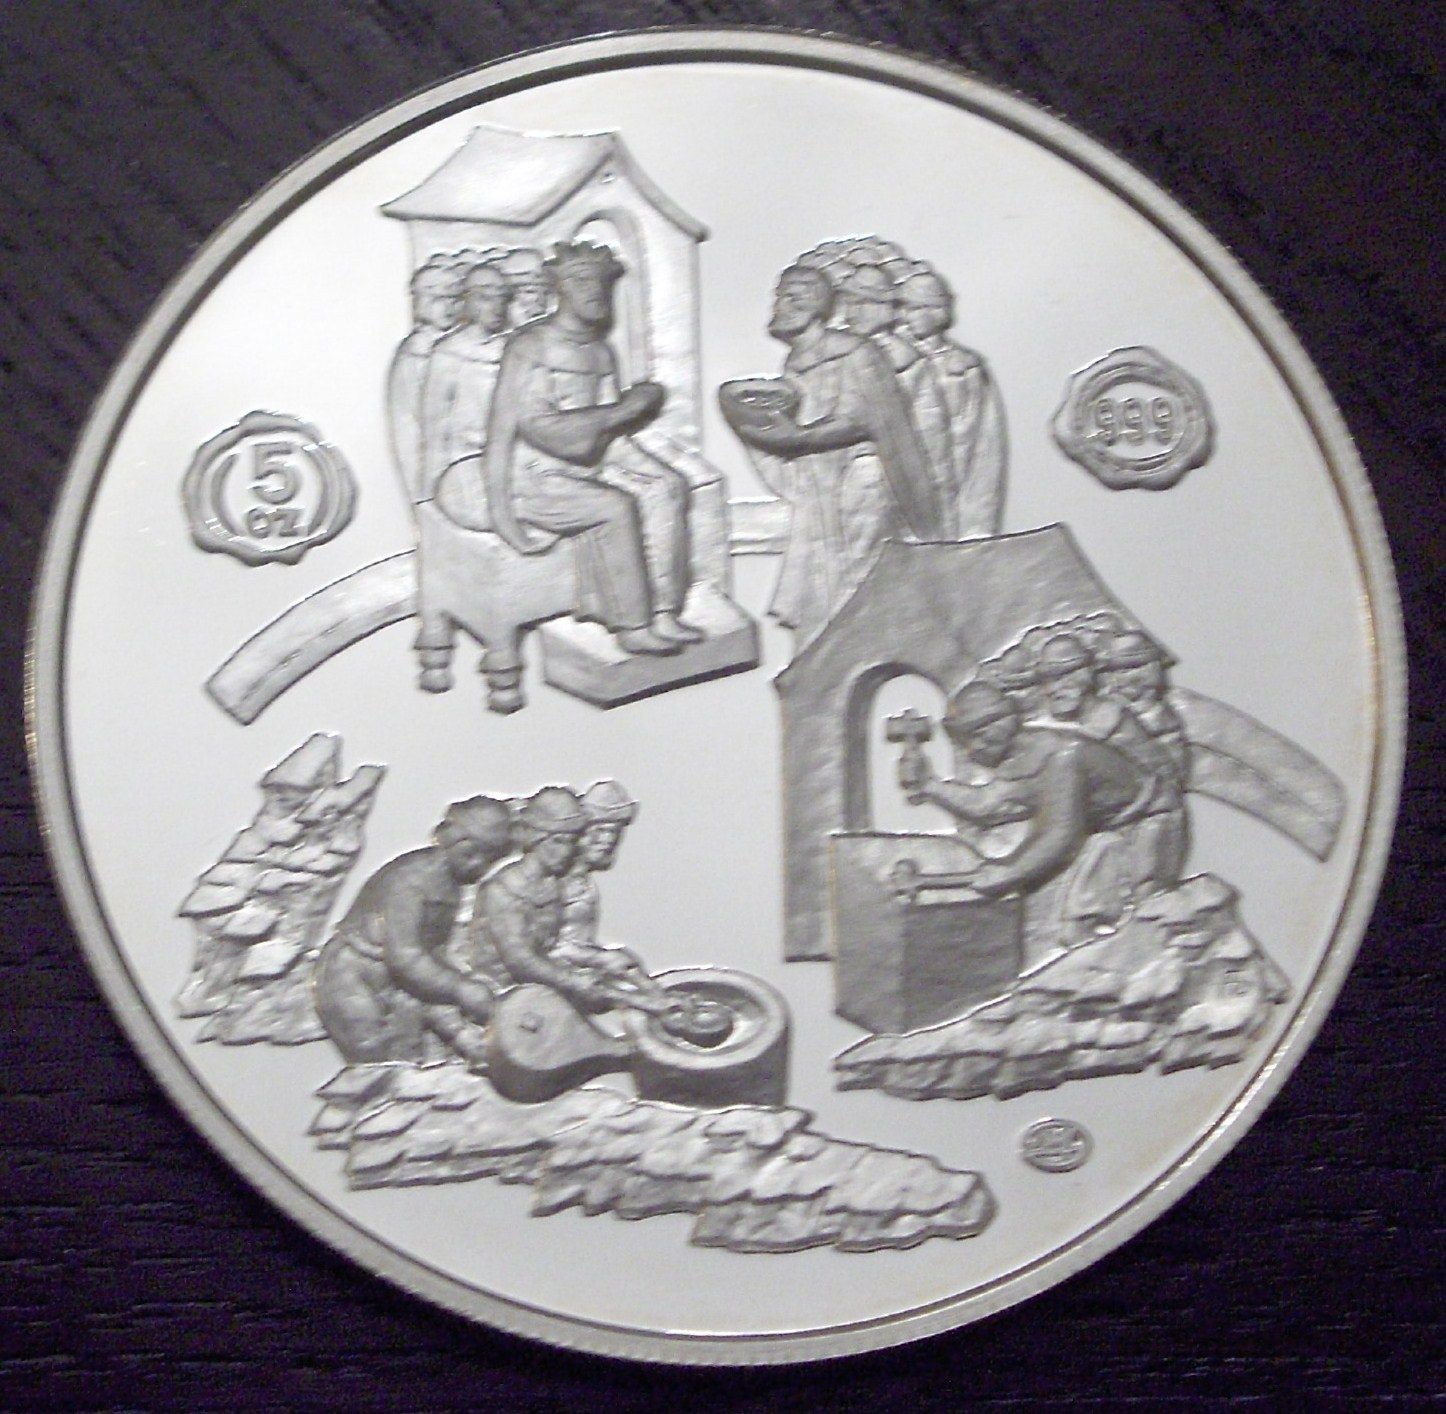 Russia 1988 5 Ounces Coins front